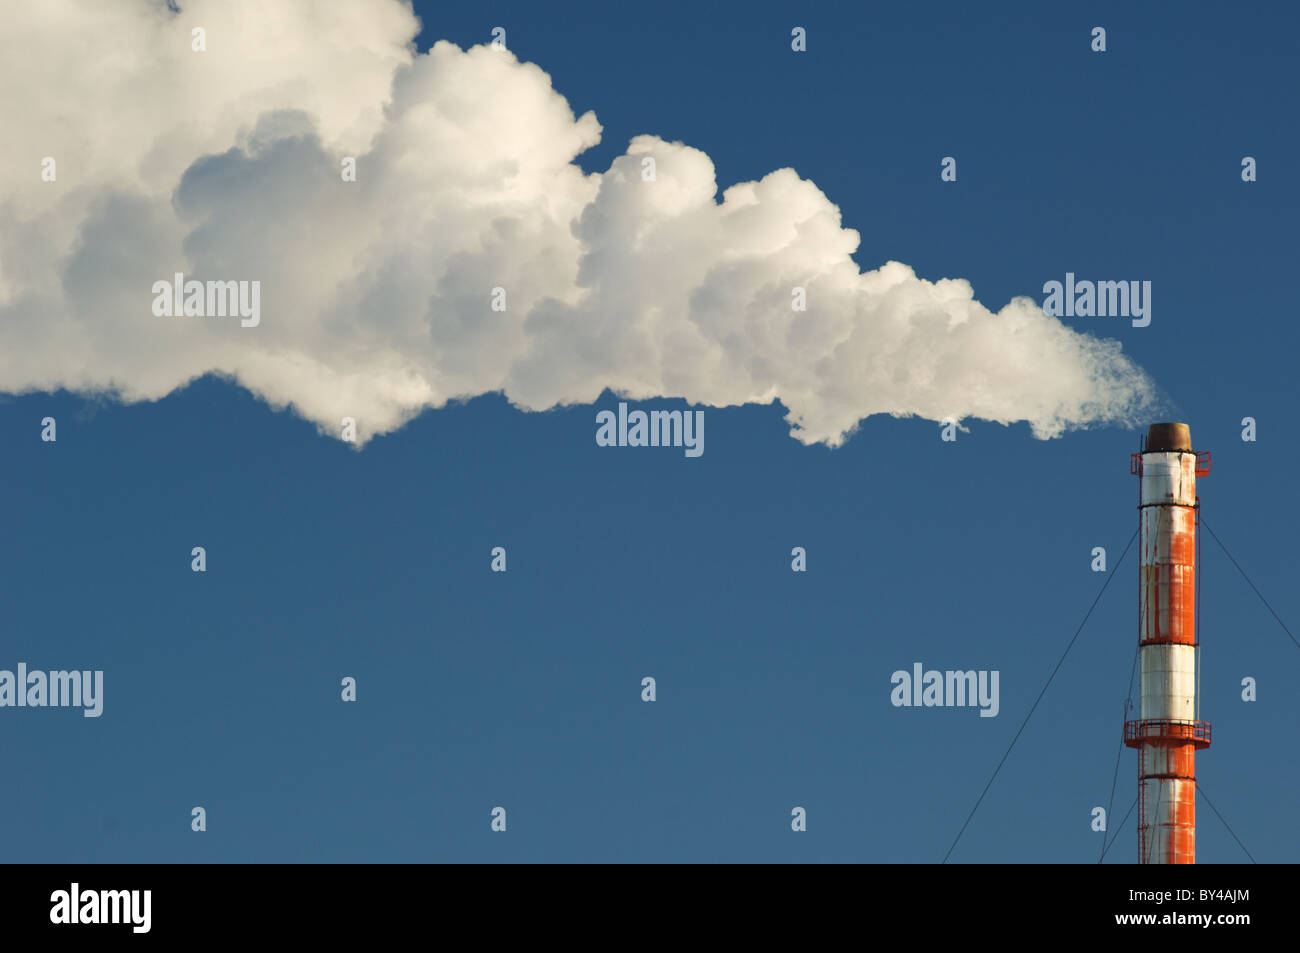 Smoke, gas and steam billows from a smokestack against a blue sky. - Stock Image